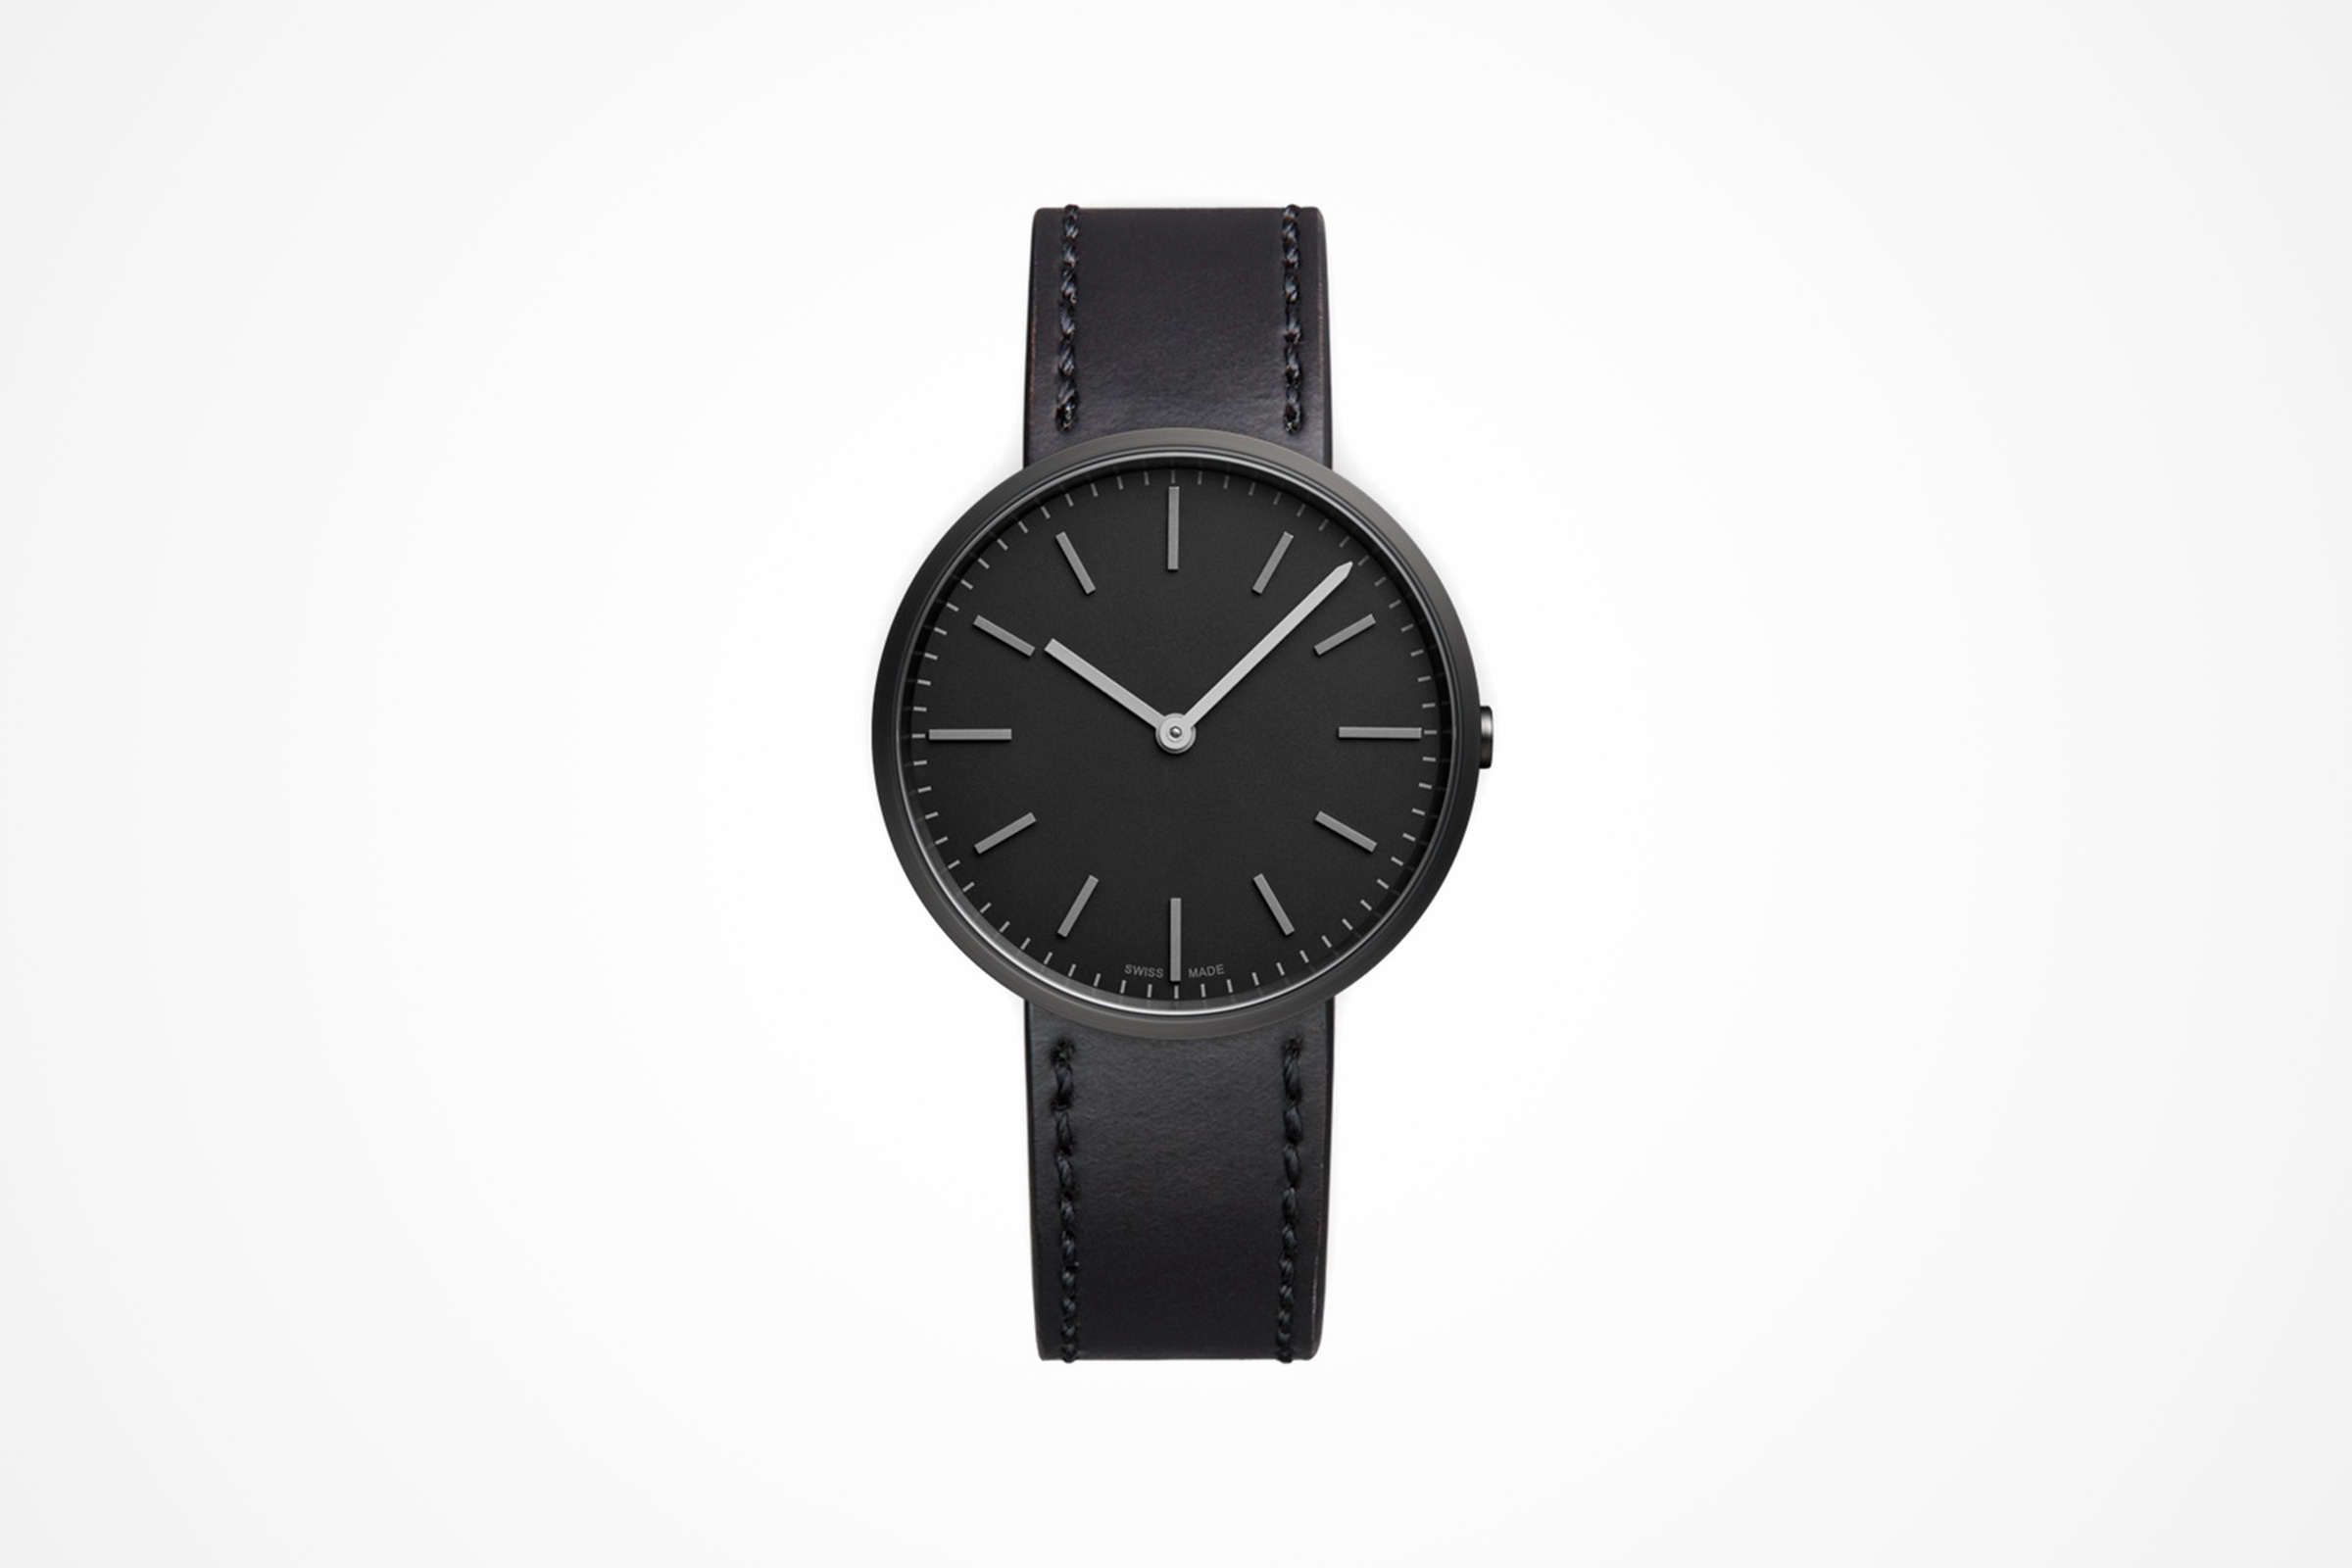 the hunter watches minimalist minimal cool